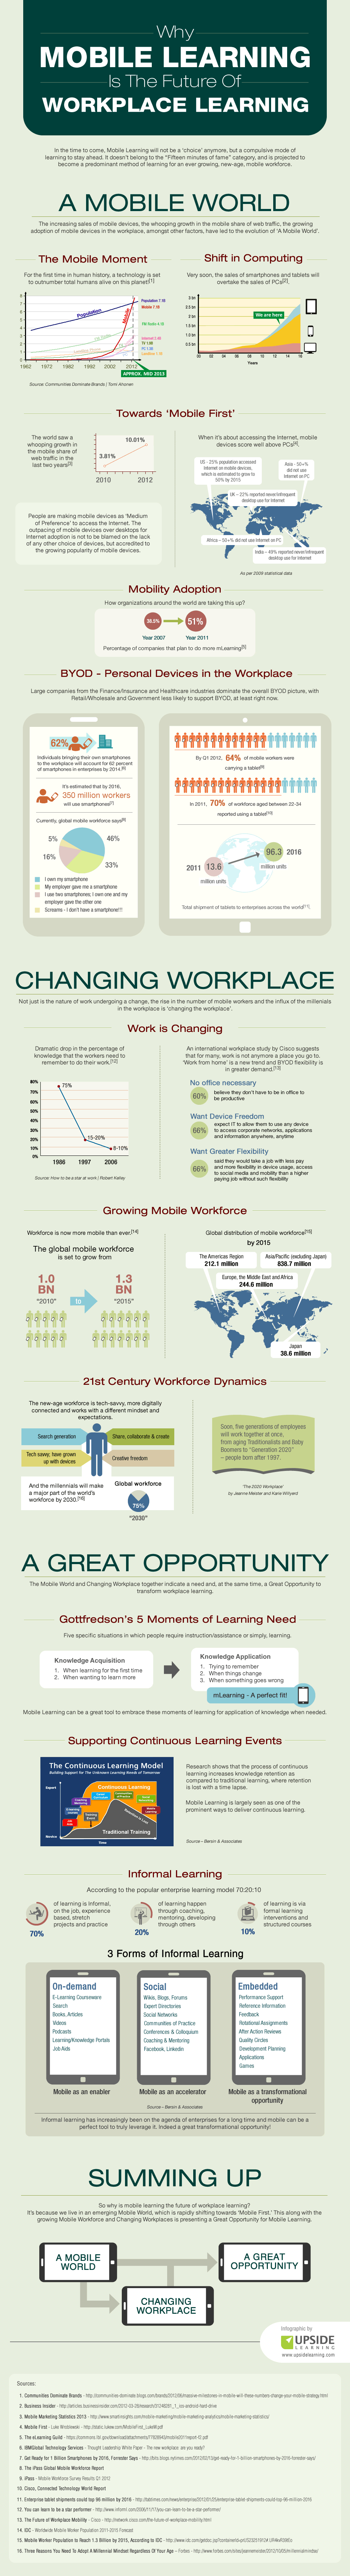 why-mobile-learning-is-the-future-of-workplace-learning